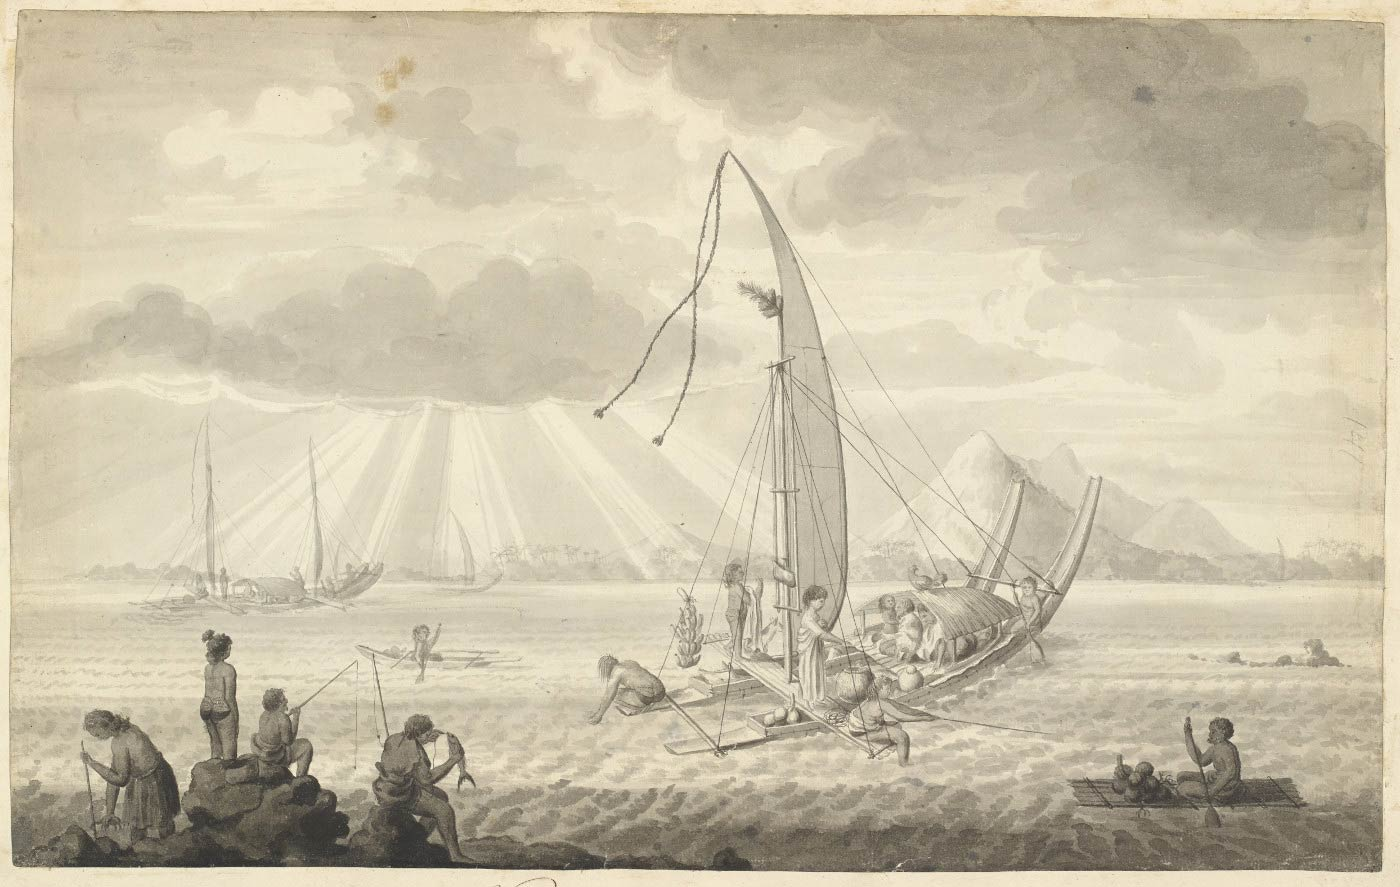 Black and white drawing of an outrigger canoe with a family seated under a shadecloth at the front and people fishing from either side. More people fish from the shore and other canoes are seen in the distance and beyond them, mountains rise under light streaming from above. - click to view larger image